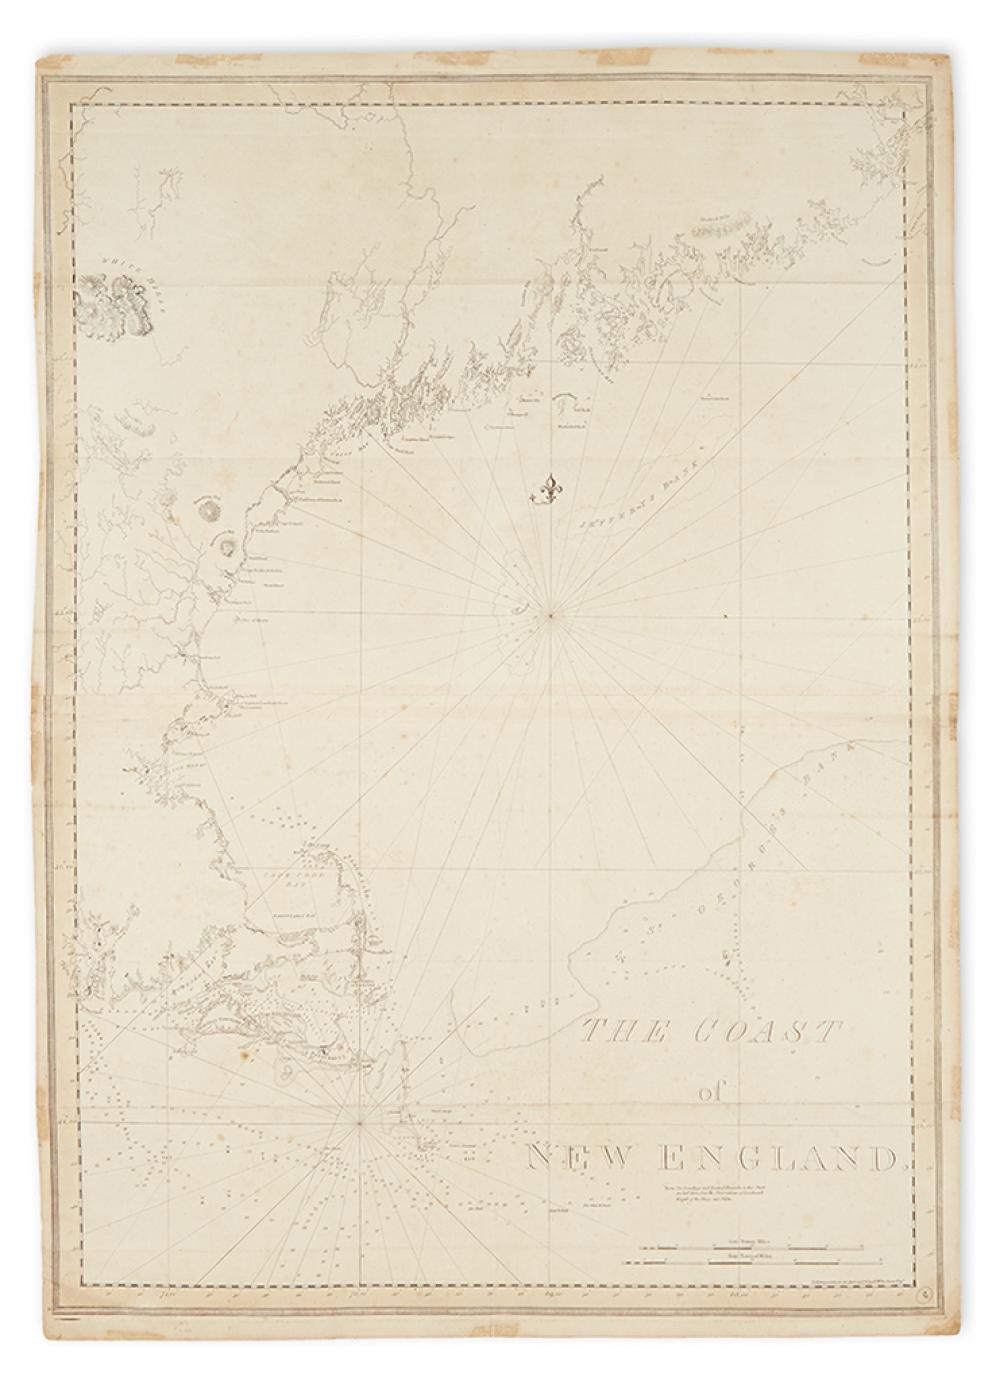 DES BARRES, JOSEPH FREDERICK WALLET. The Coast of New England.